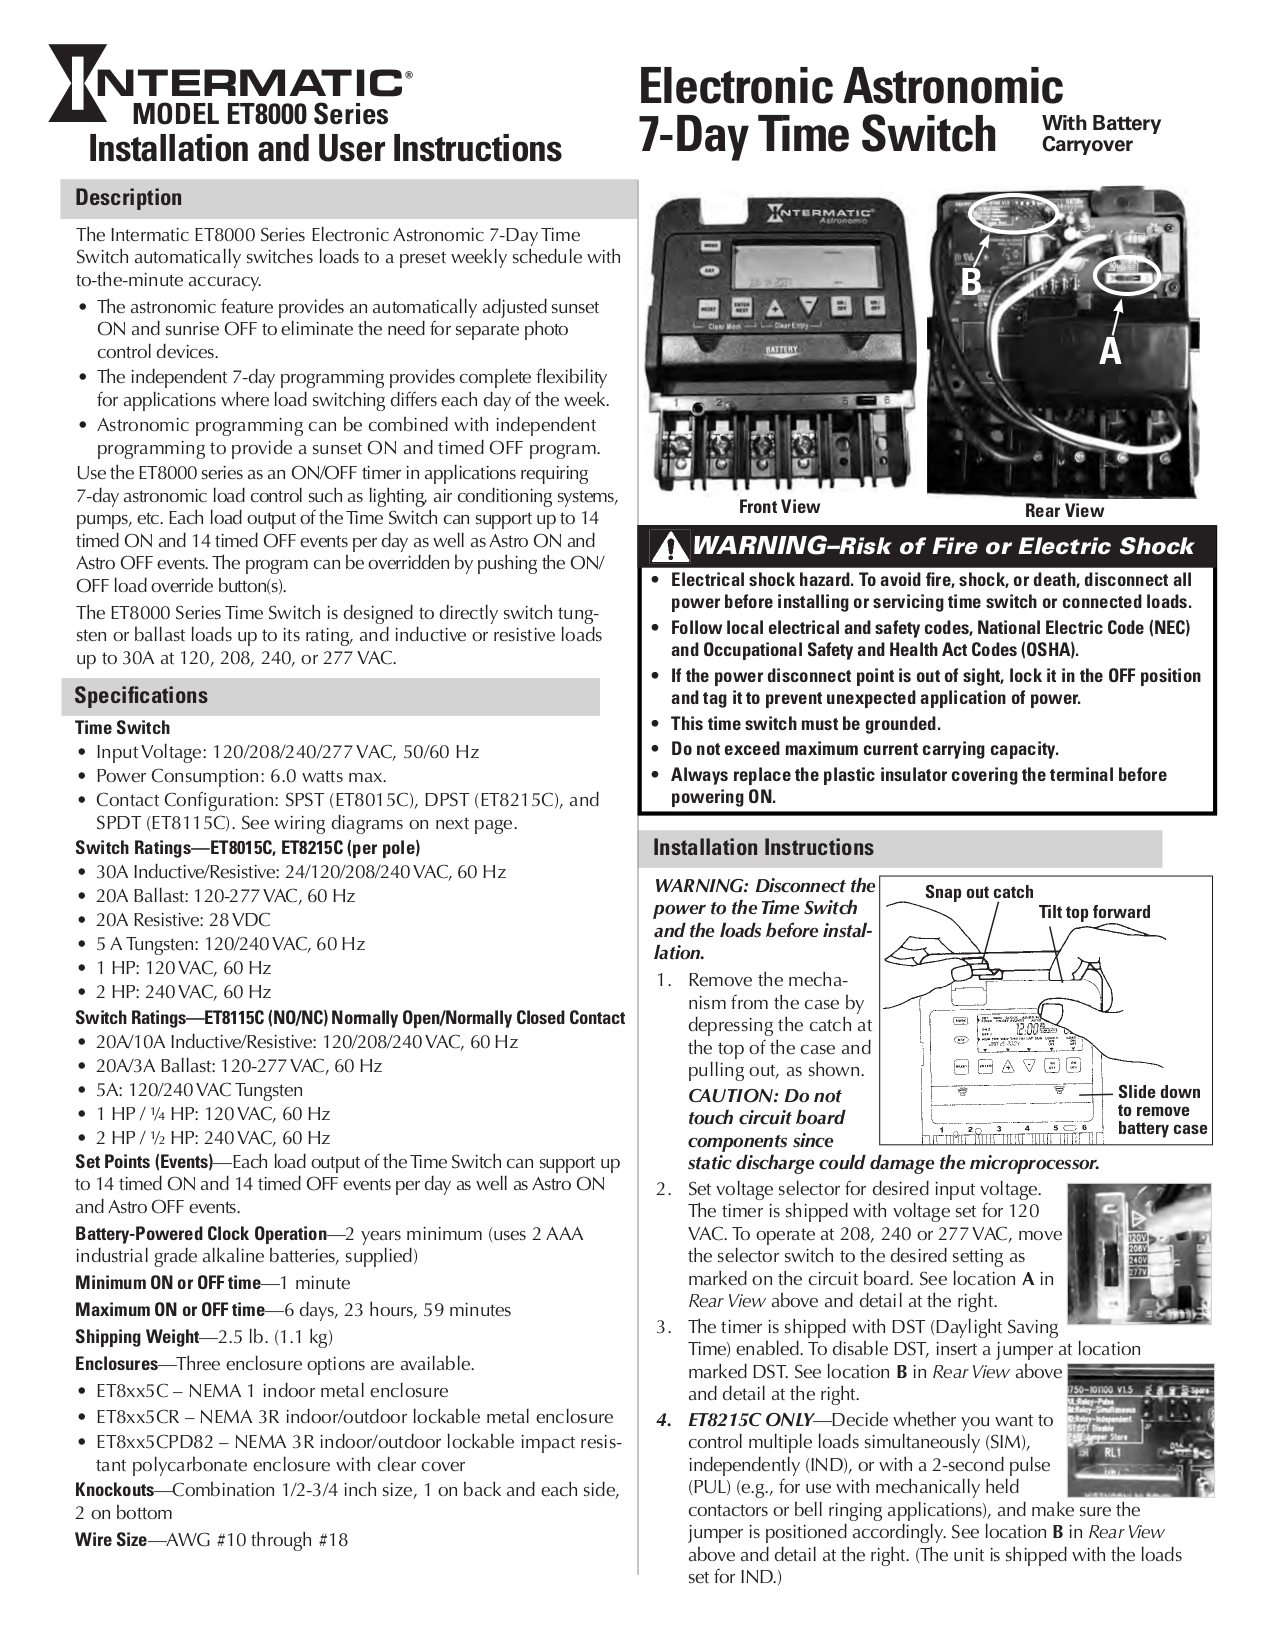 Maytag Cre9800acb Timer Manual Guide